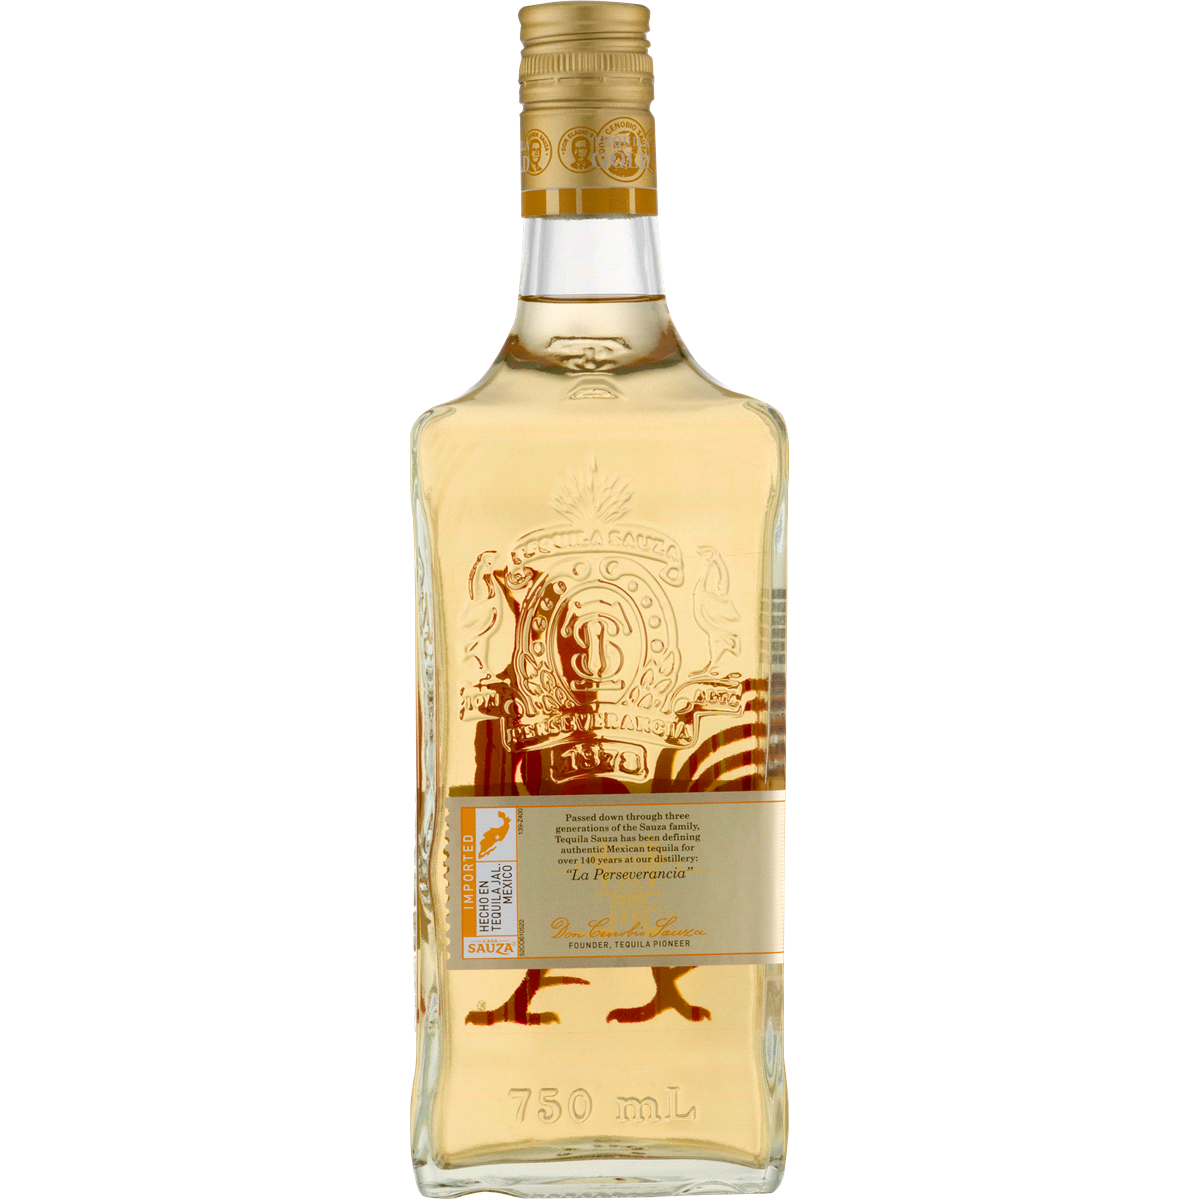 slide 2 of 2, Sauza Gold Tequila,